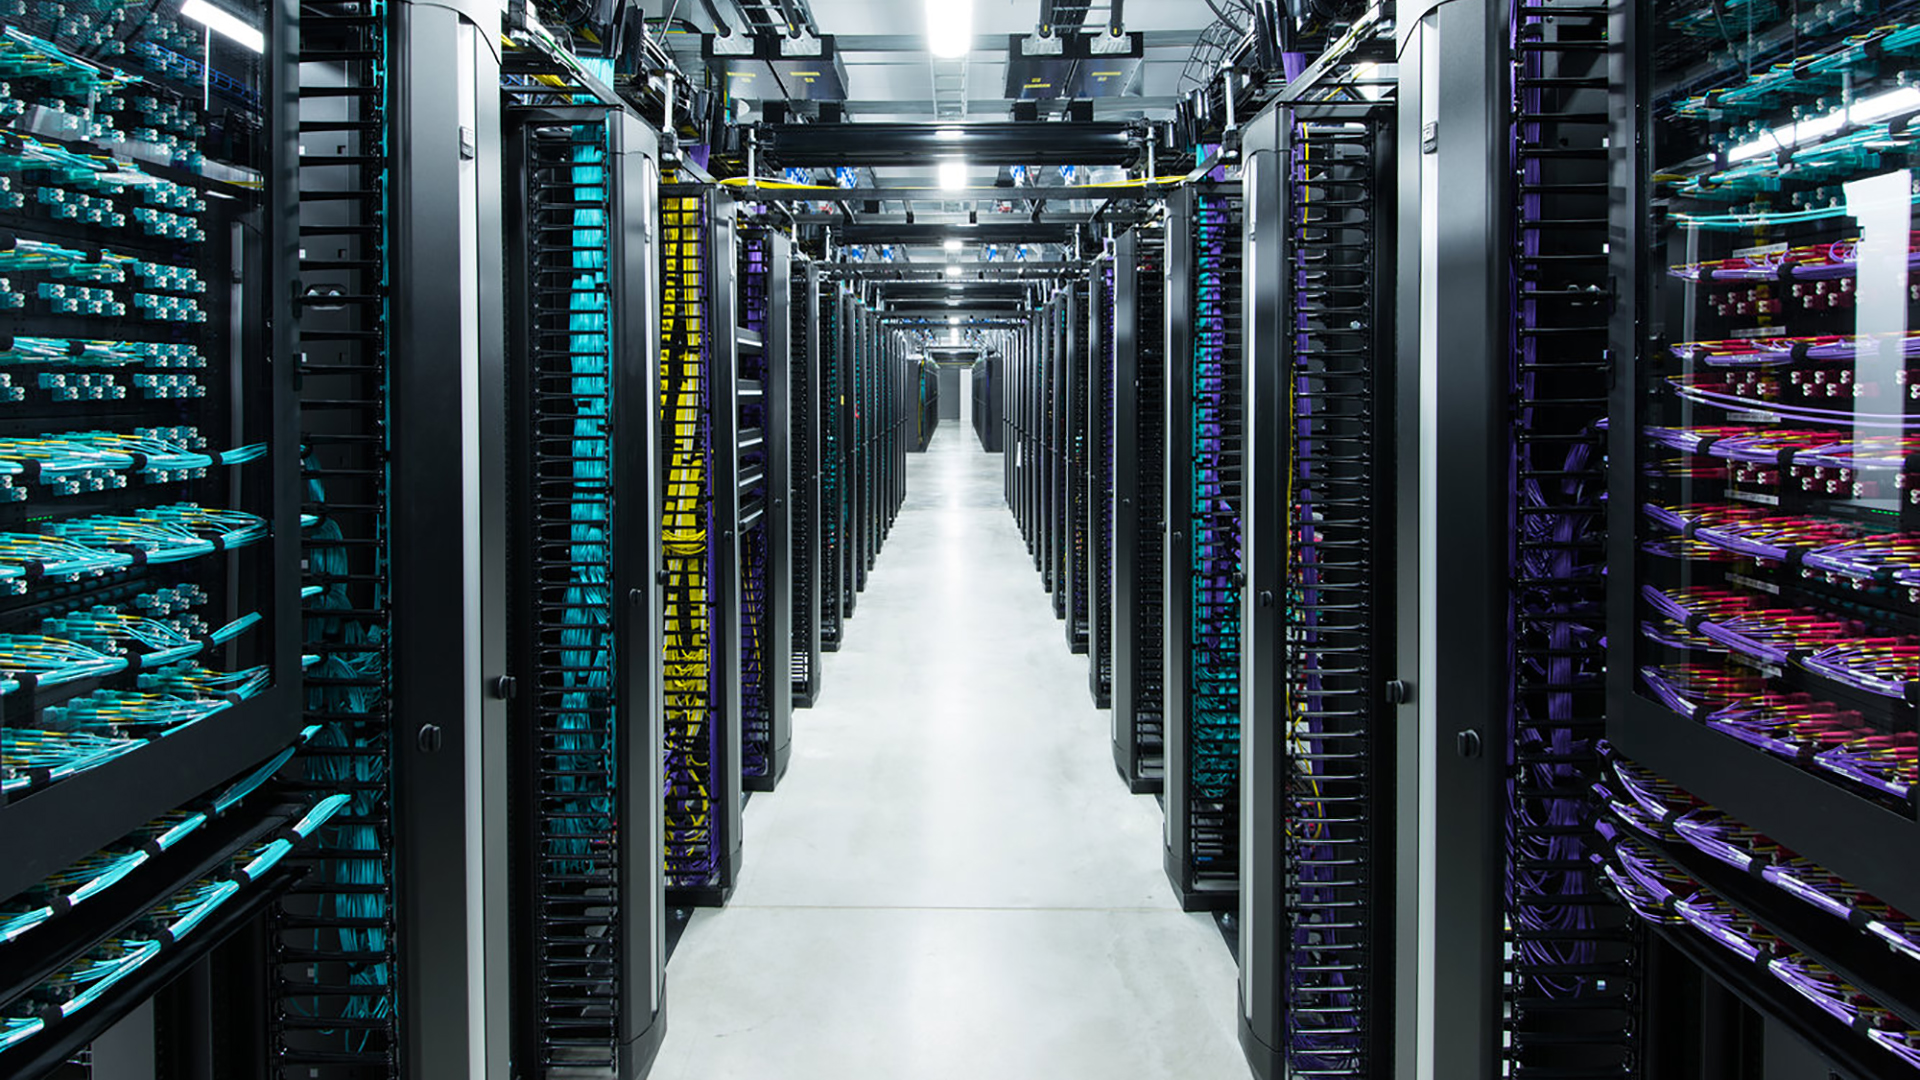 Server room at the Facebook data center. Virtual background to use on Zoom, Microsoft Teams, Skype, Google Meet, WebEx or any other compatible app.